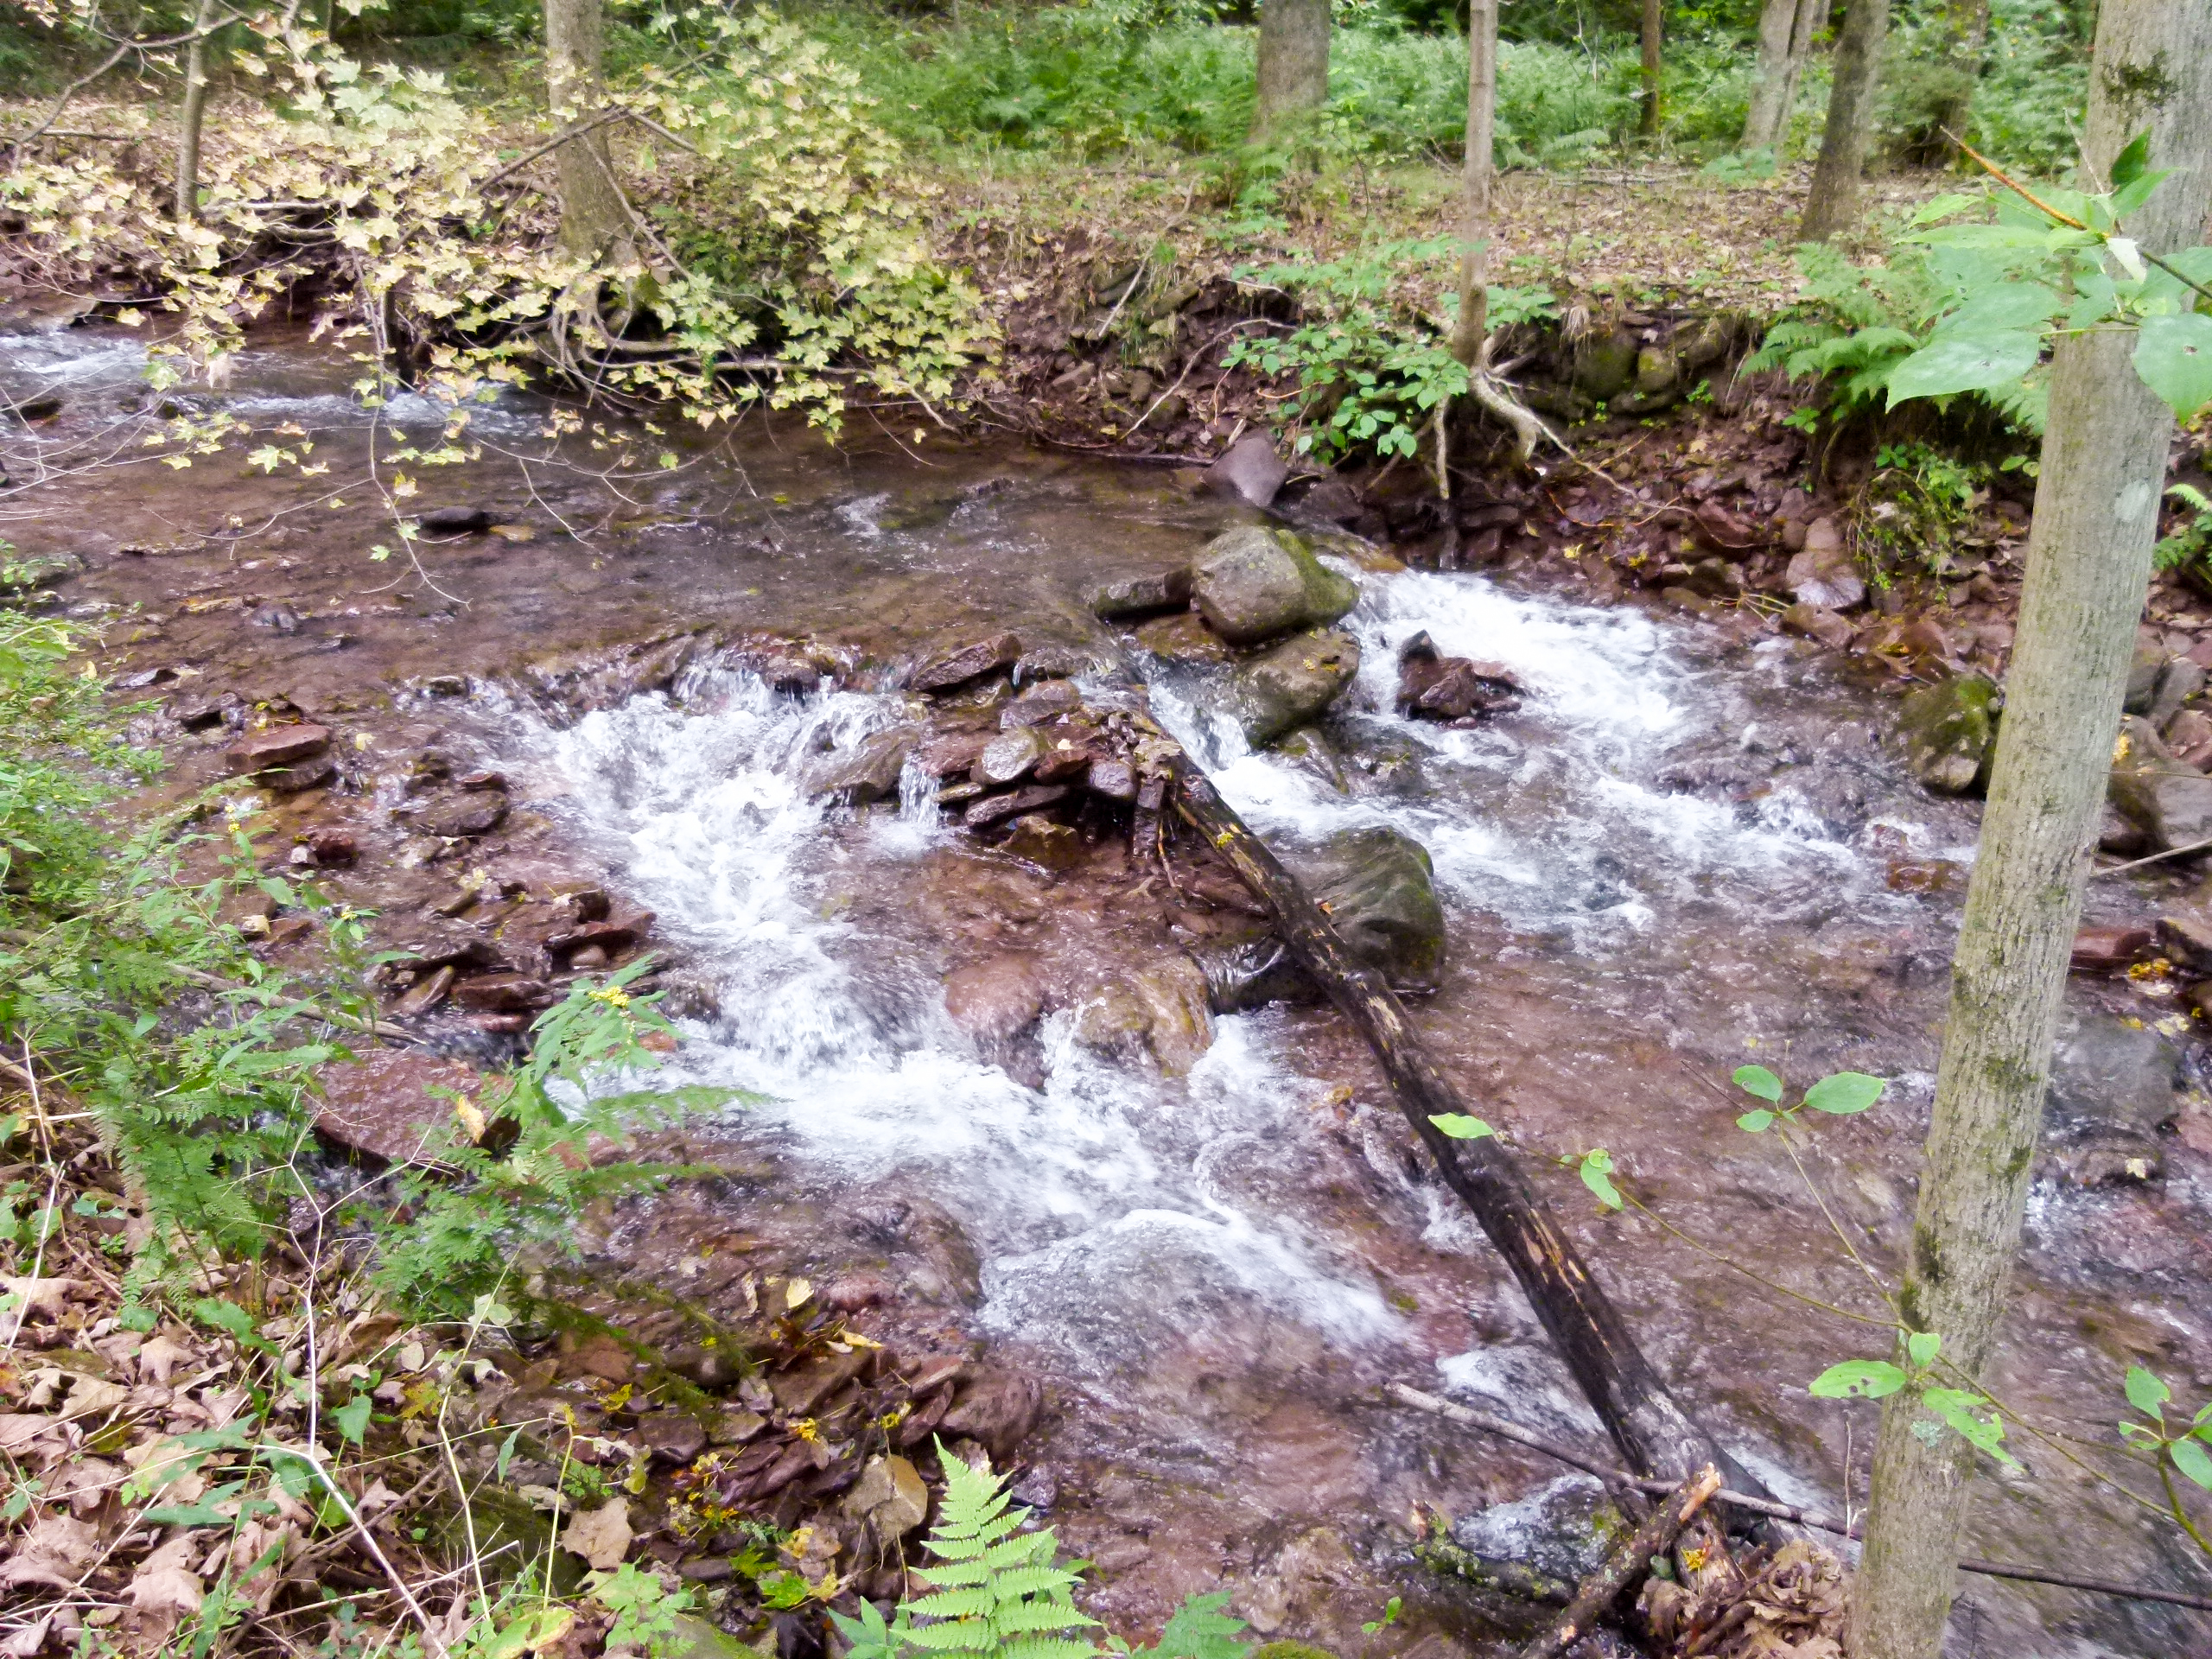 A fast moving stream near the entrance to Blue Knob State Park.